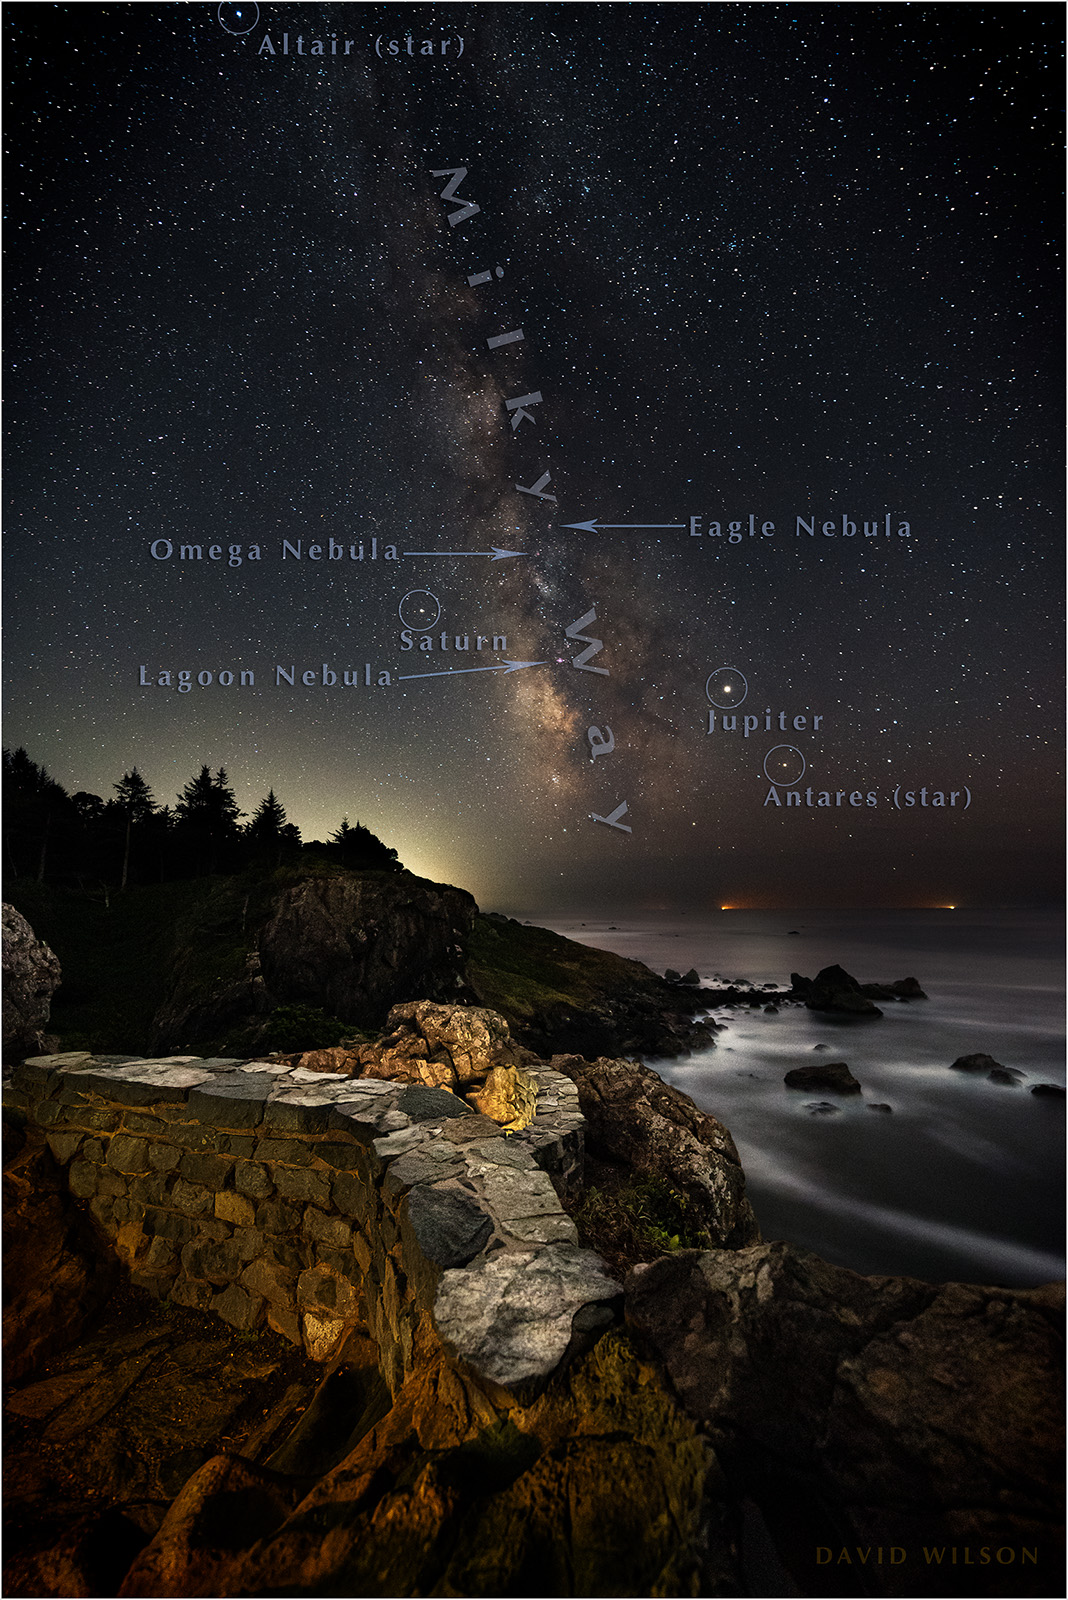 Too numerous to label, stars, nebulae and planets abound in this image with some of the notable objects annotated. Not labeled is the Dark Horse Nebula; its foot is standing on Jupiter, can you spot it? Pacific Ocean, Humboldt County, California. September, 2019.